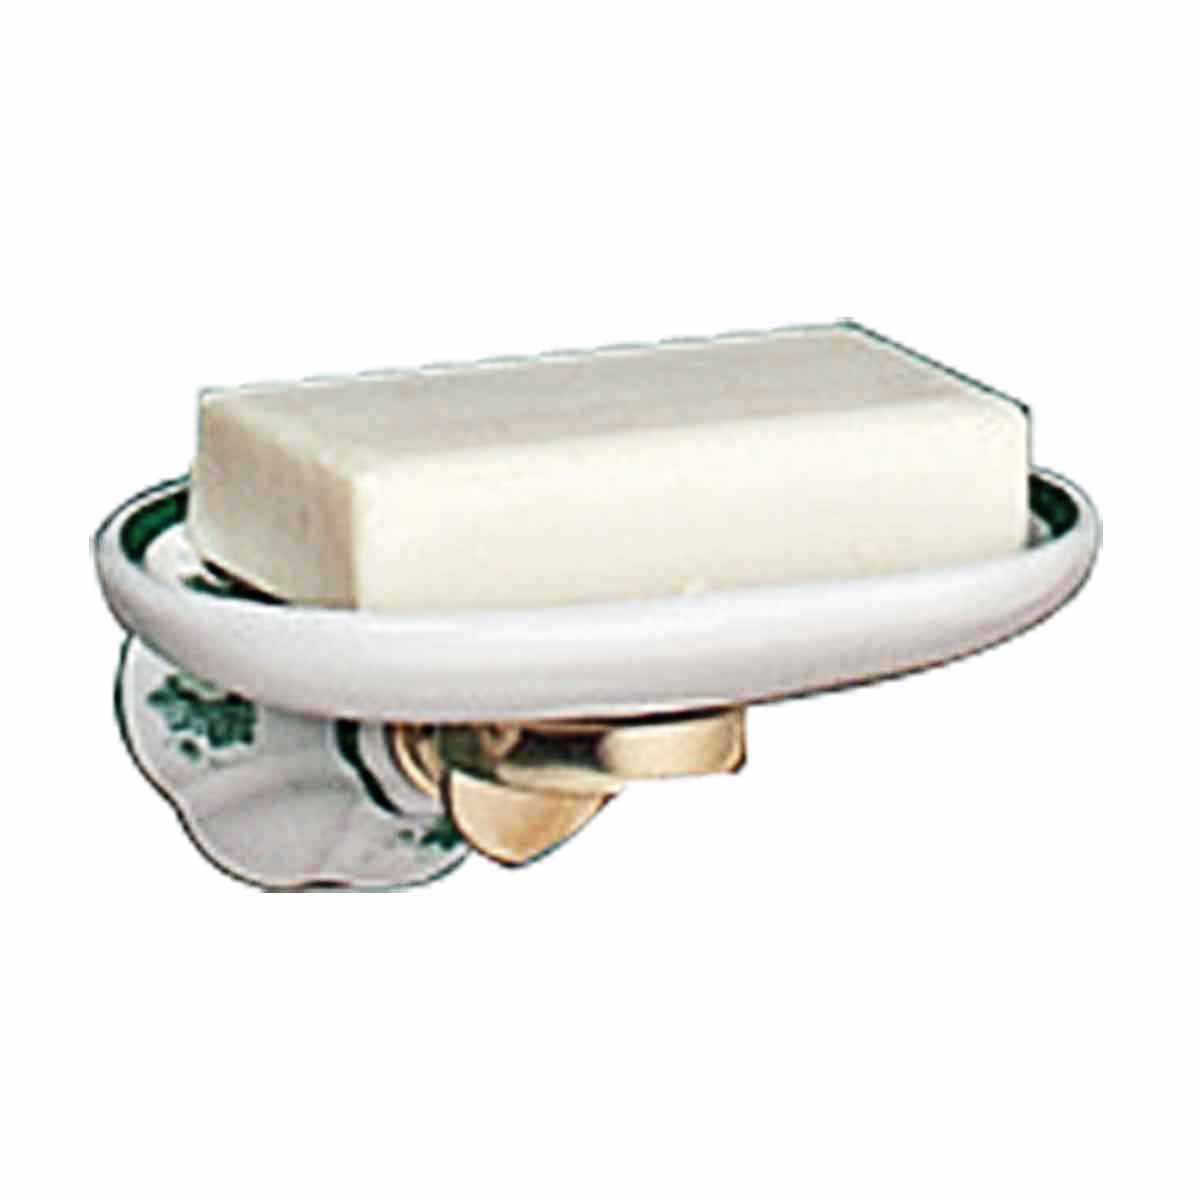 Vintage wall mount soap dish white green ivy porcelain tray for White ceramic bathroom tray